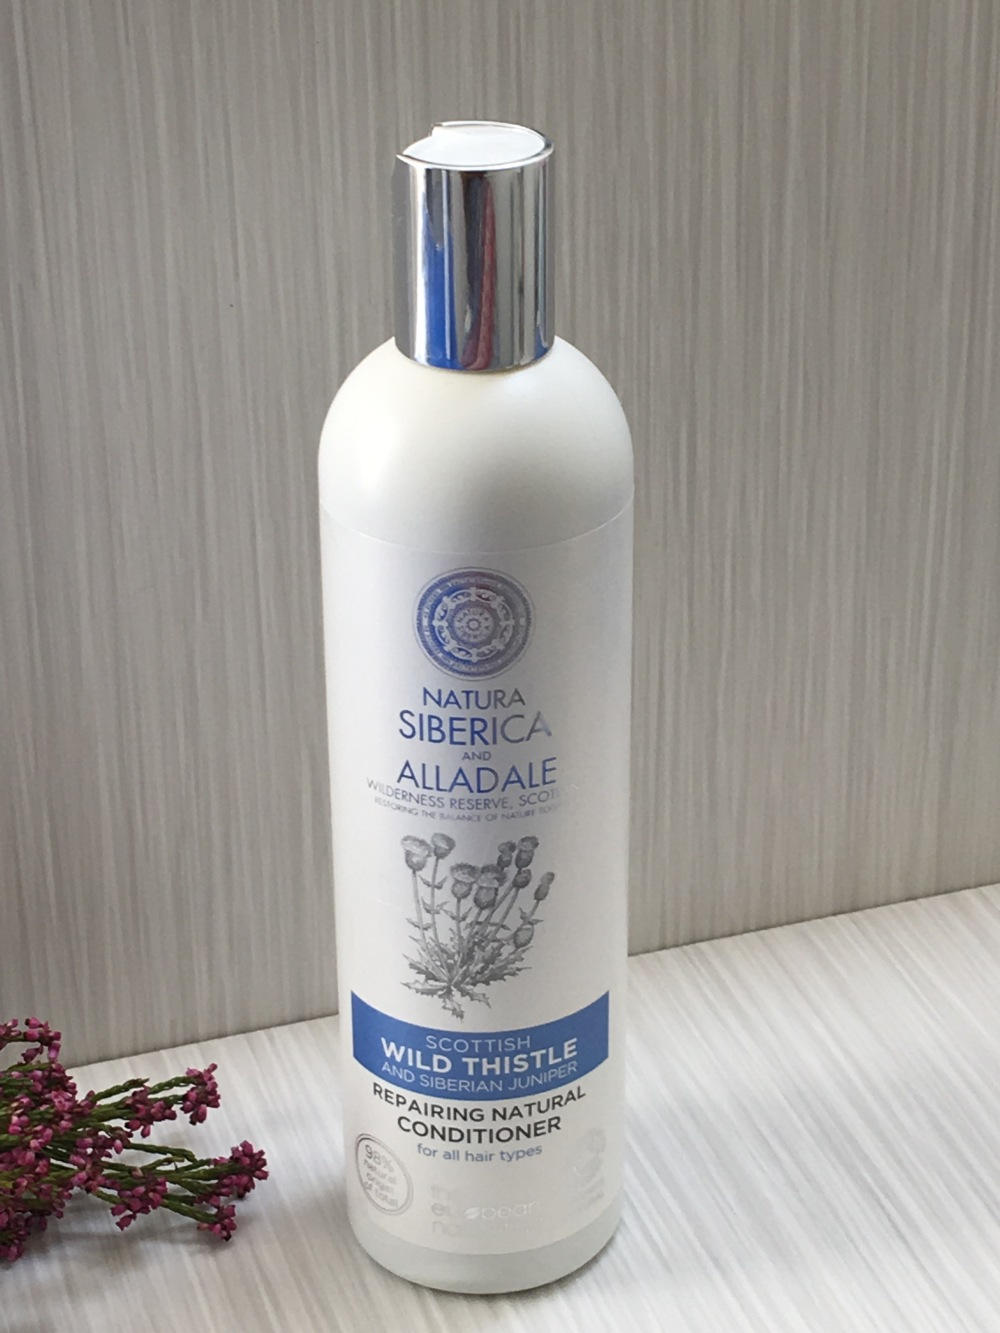 Natura Siberica and Alladale Repairing Natural Conditioner